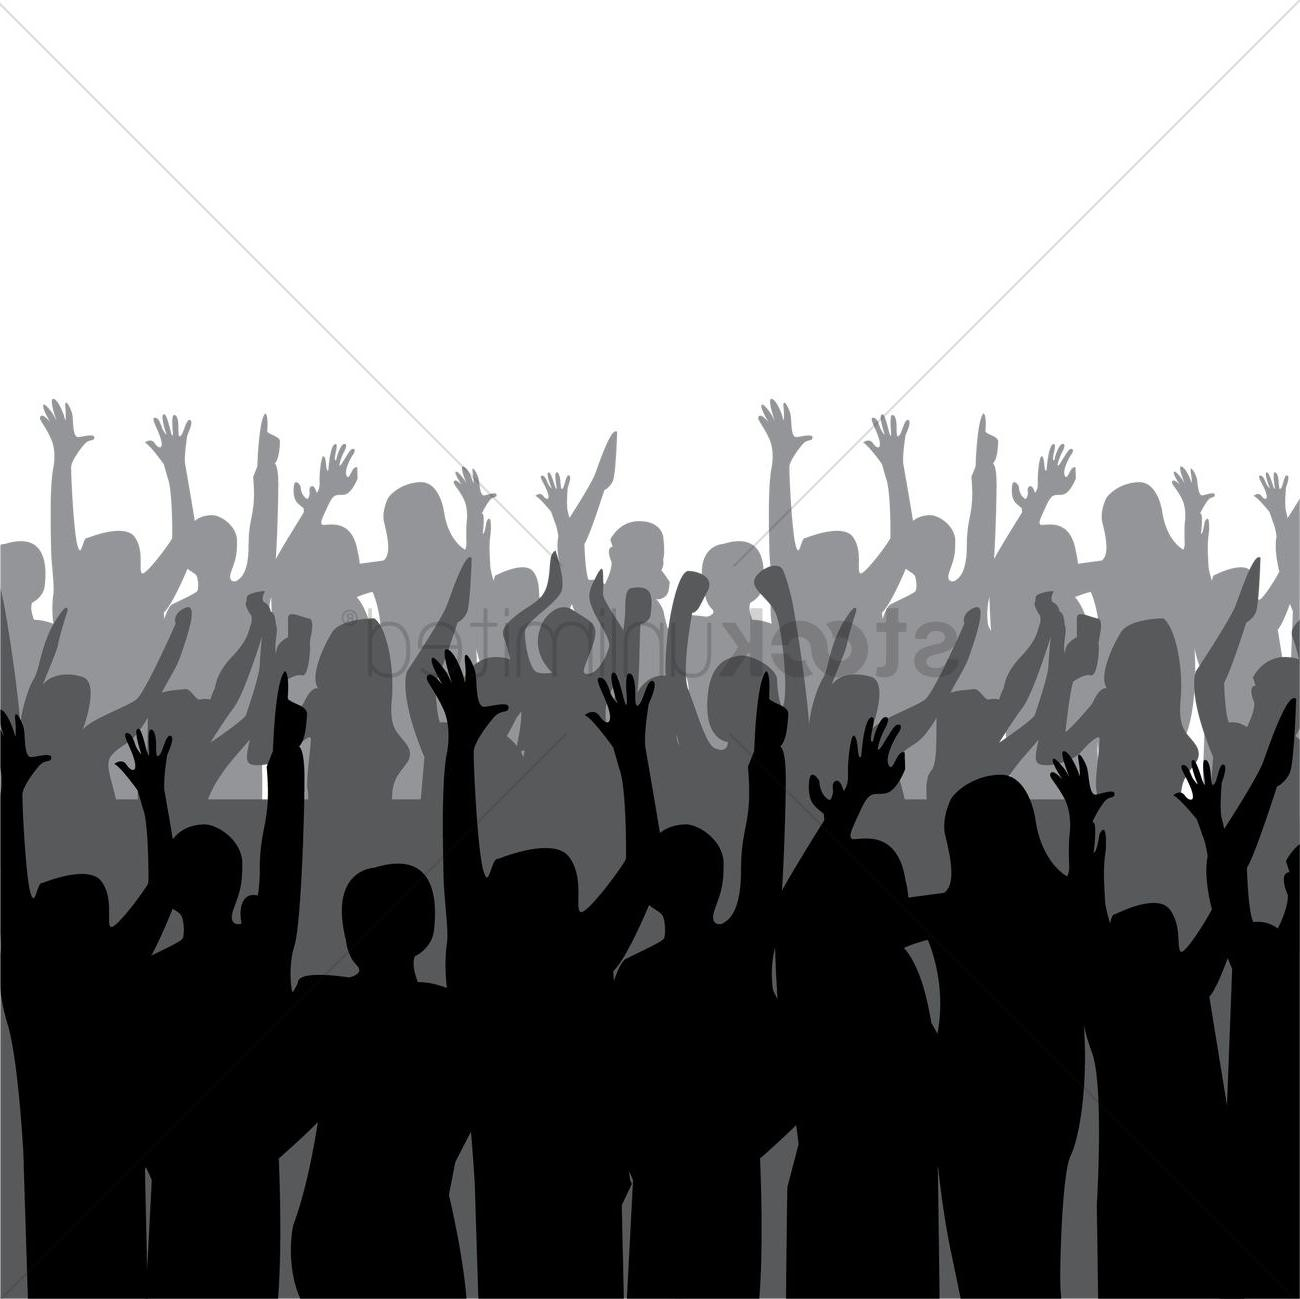 HD Crowd Silhouette Png Vector Images » Free Vector Art.